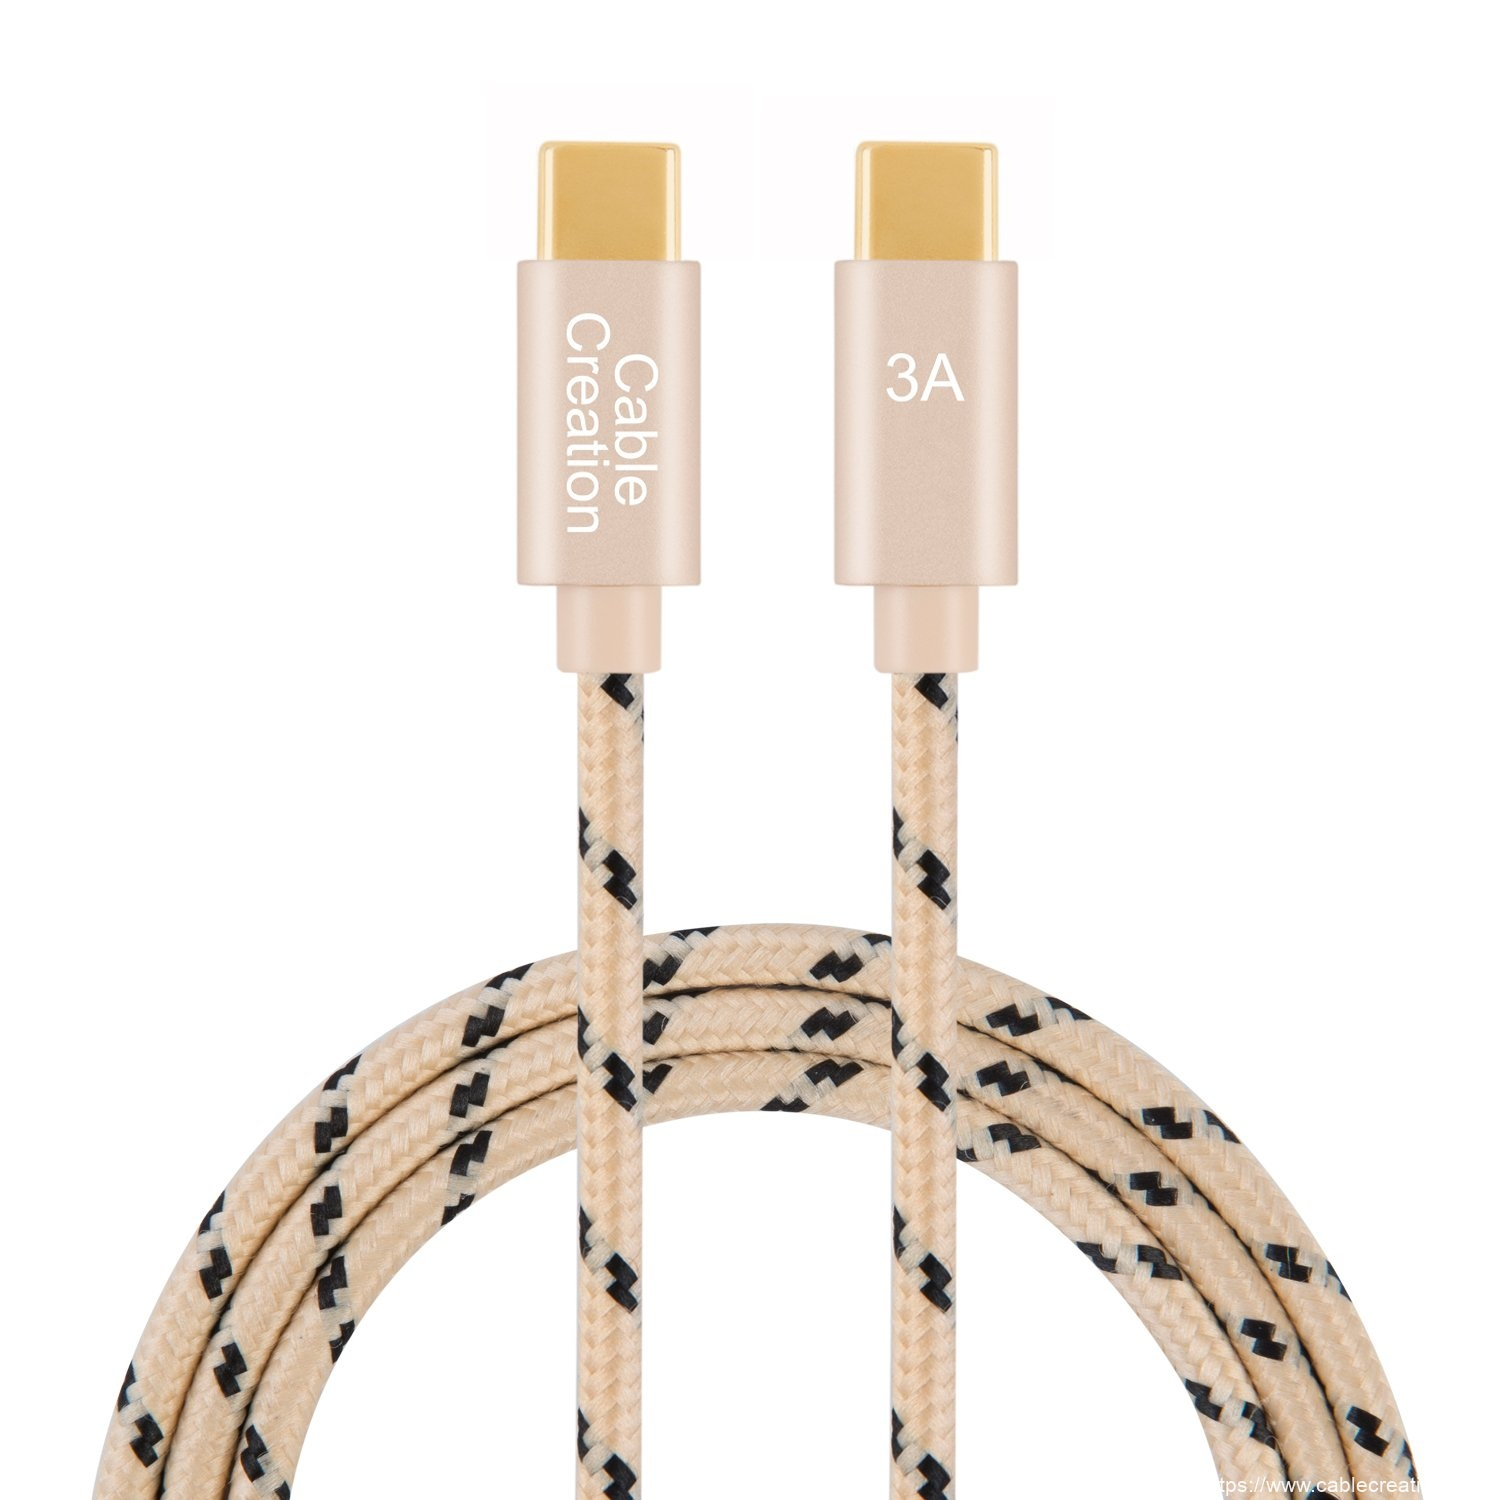 High Quality Usb C Dongle - USB C to USB C Cable 1.6 Feet/0.5 Meters, #CC0727 – CableCreation